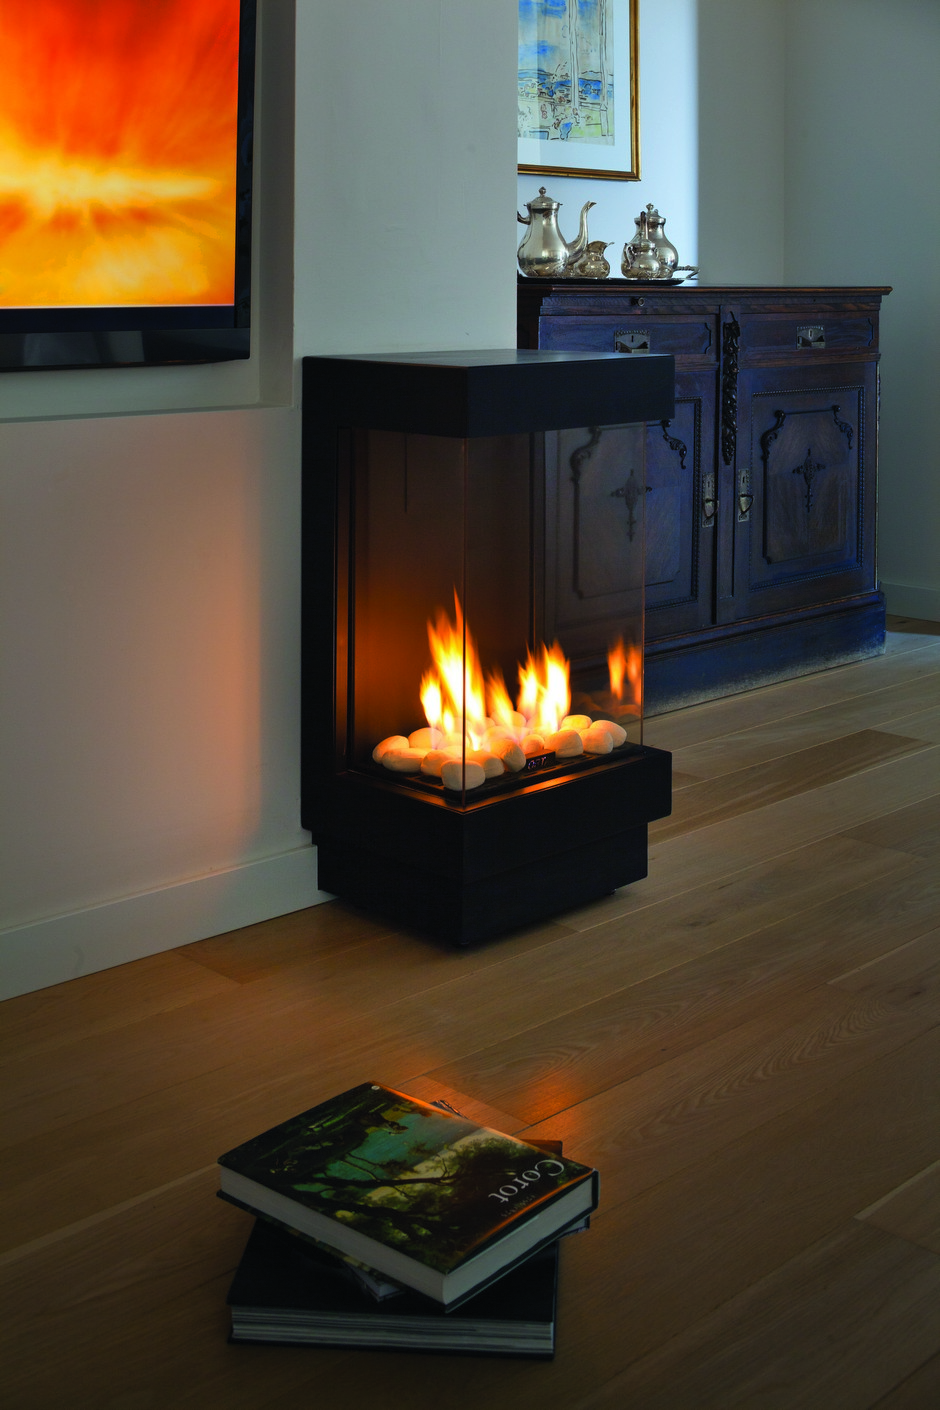 ortal standalone front and two side gas fire up to cm wide - there are a variety of standalone styles including freestanding cornersmall freestanding stove wide aspect wall mounted and decorative canopy